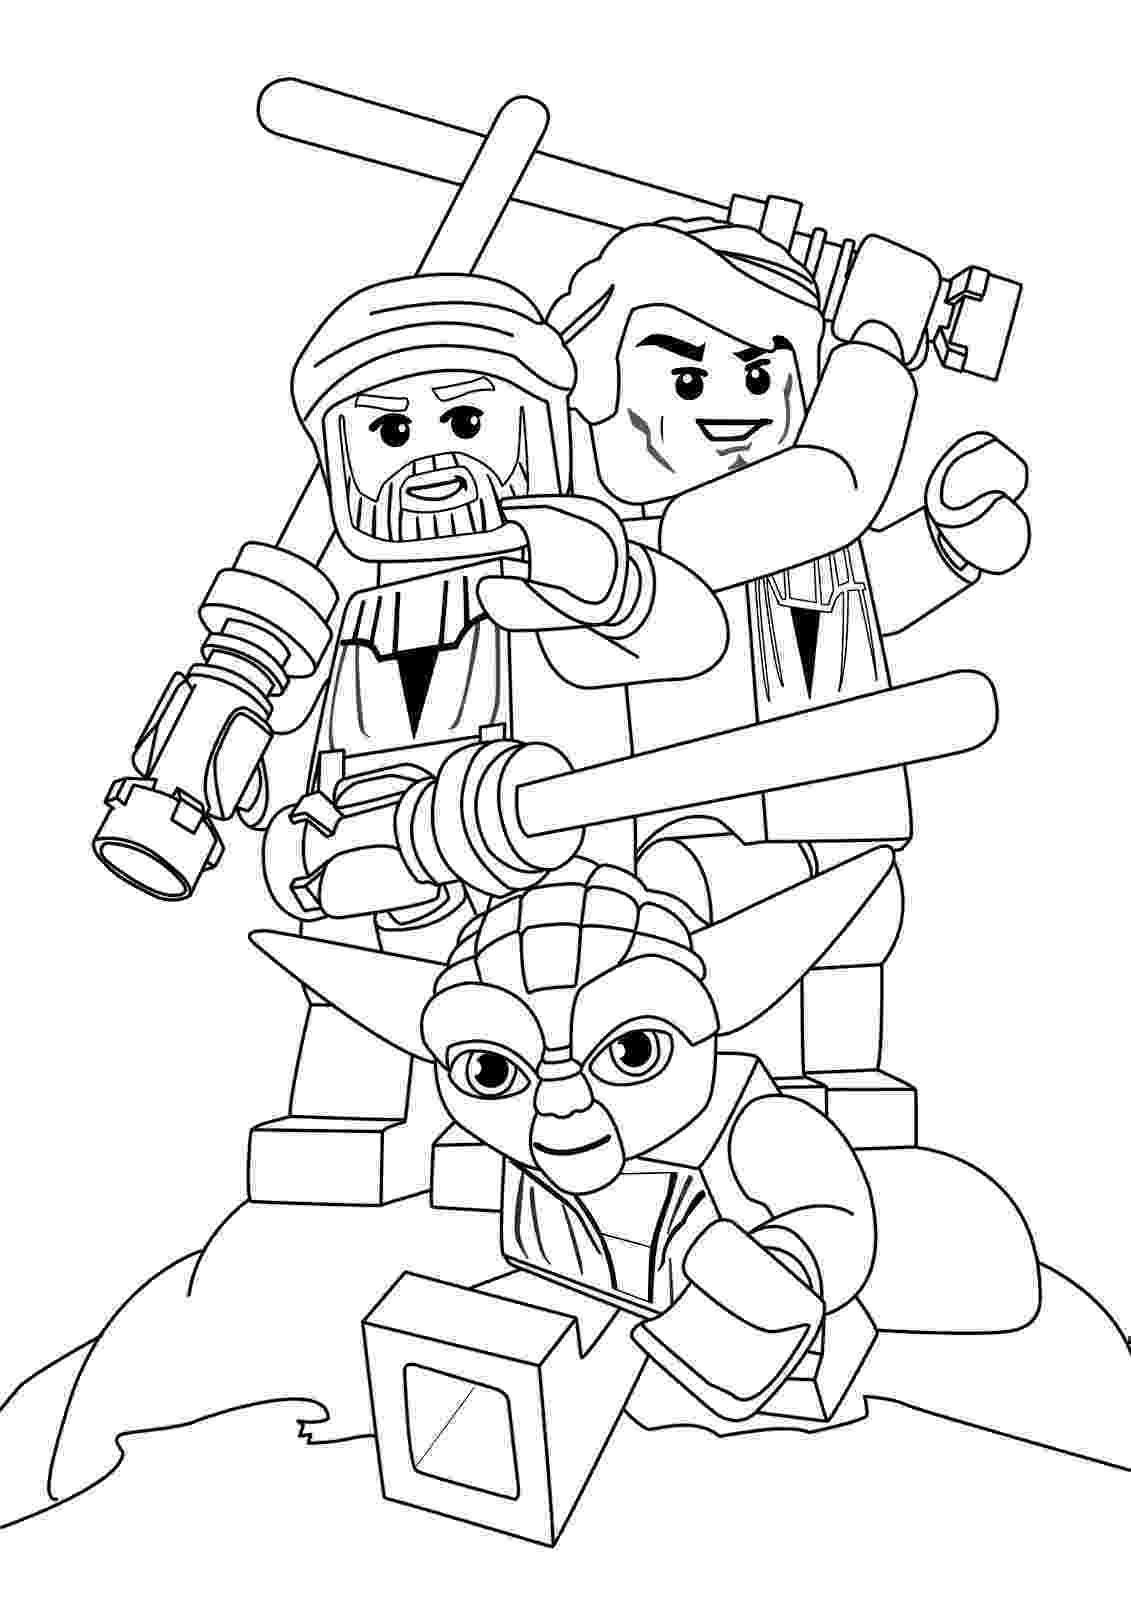 star wars print out coloring pages lego star wars coloring pages best coloring pages for kids star wars pages coloring print out